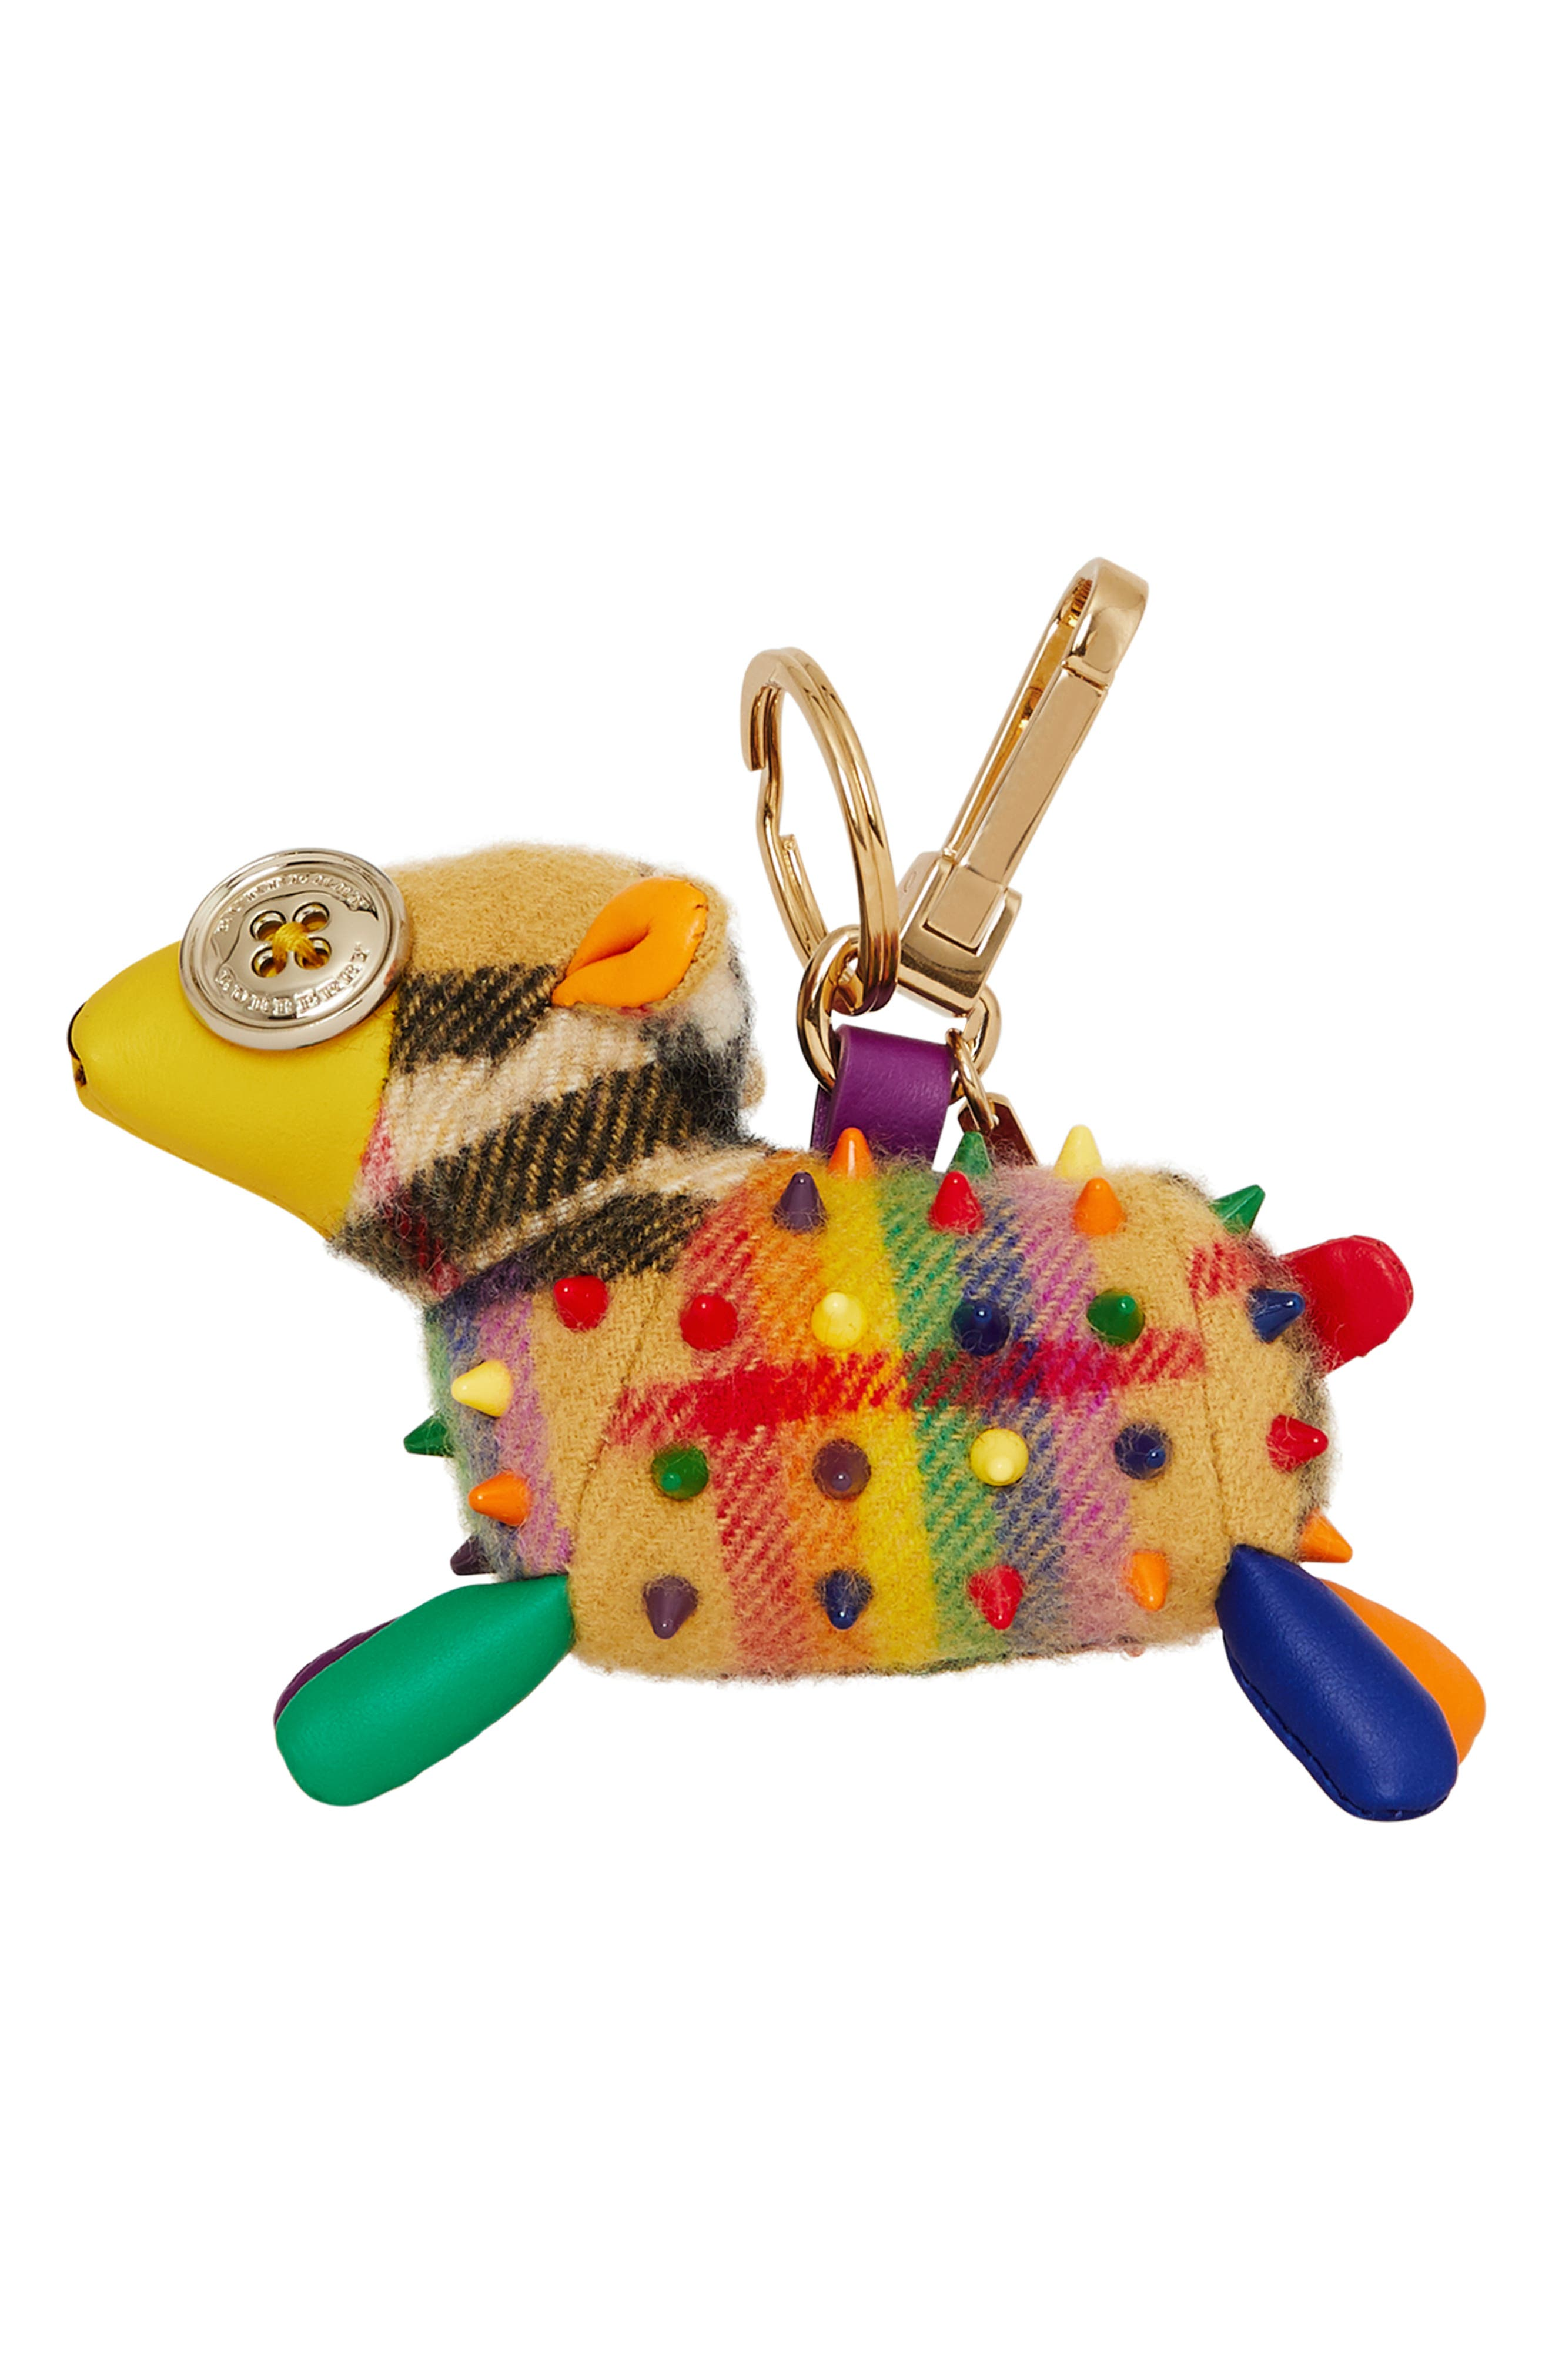 BURBERRY,                             Wendy the Sheep Rainbow Check Cashmere Bag Charm,                             Alternate thumbnail 5, color,                             250